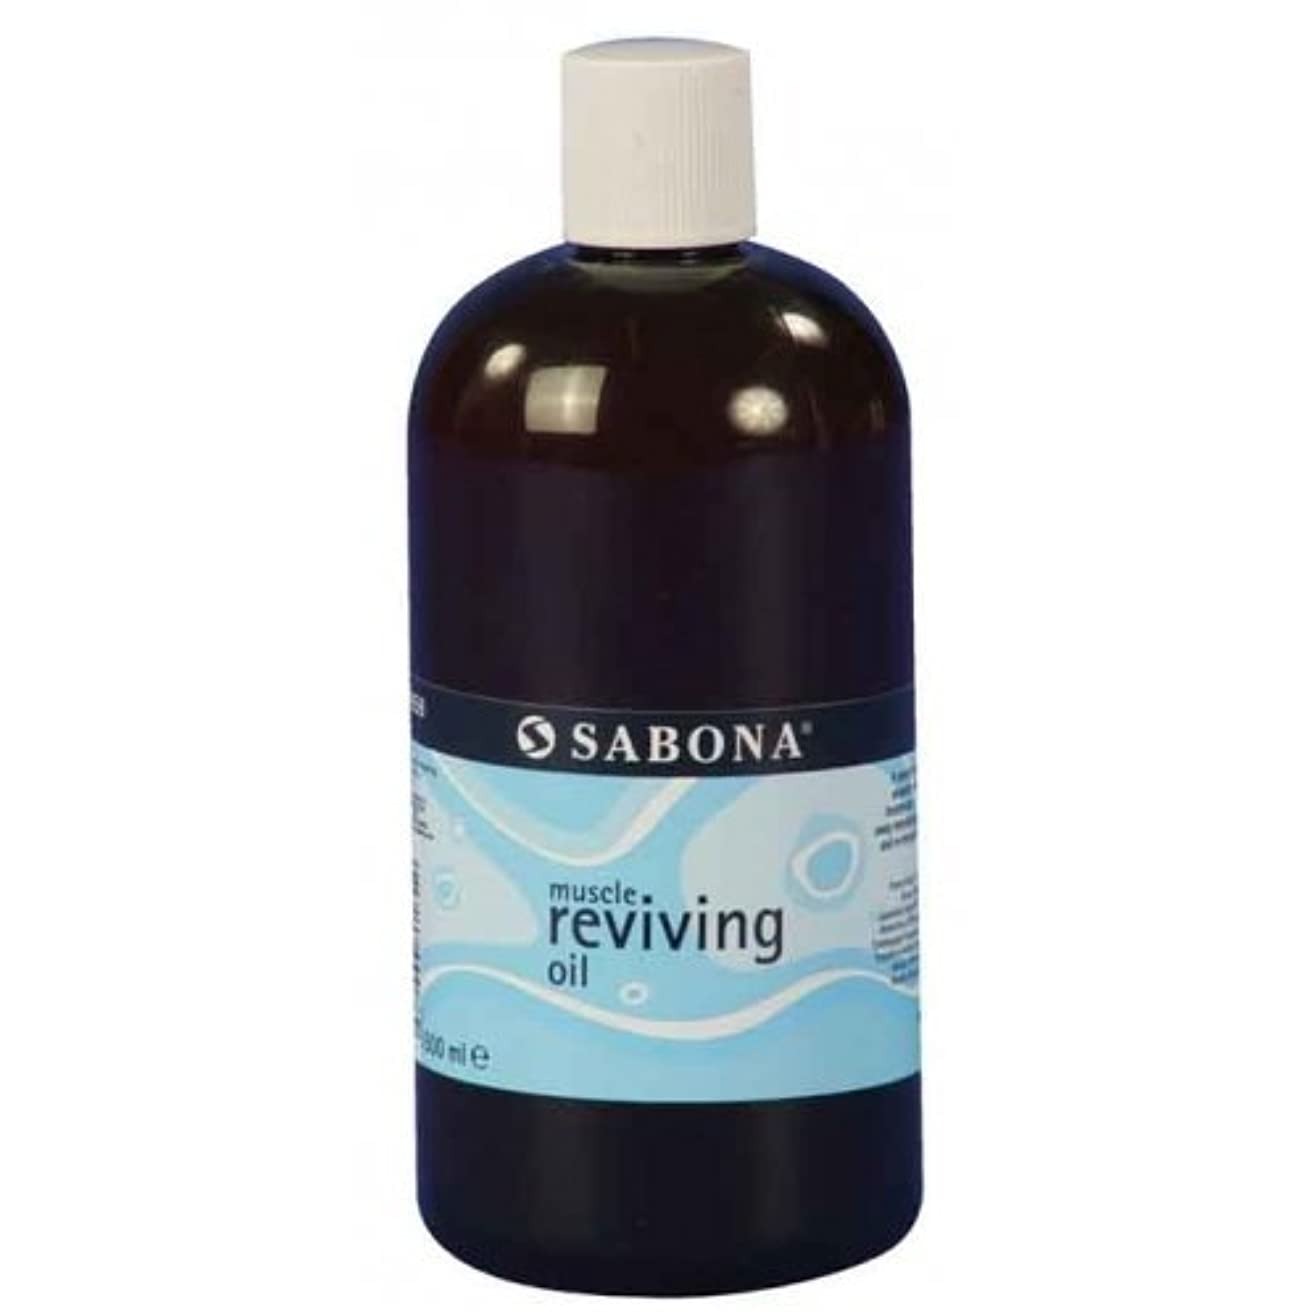 SABONA MUSCLE REVIVING OIL. 100ml. by Sabona